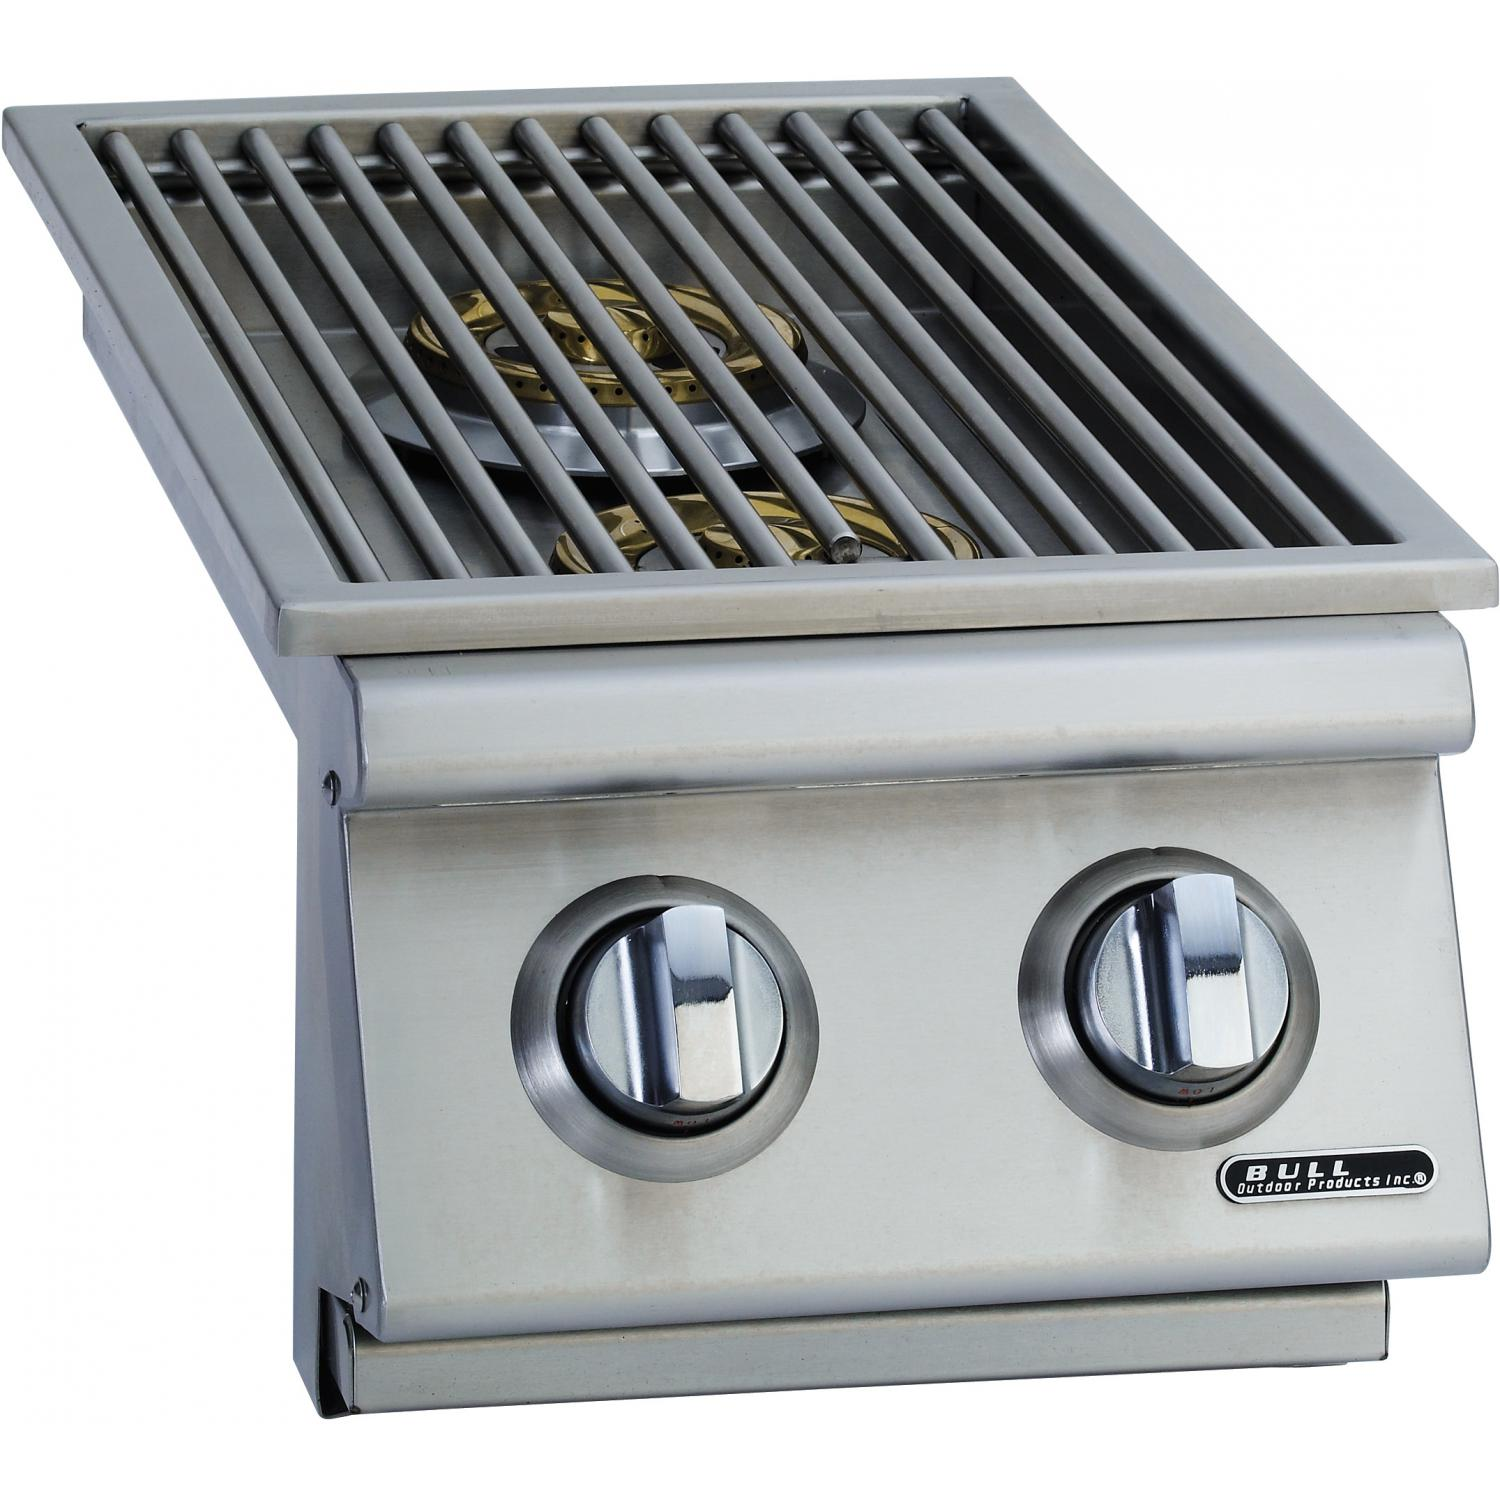 Bull Built In Propane Gas Double Side Burner W Stainless Steel Lid 30008 Bull Bbq Modular Outdoor Kitchens Outdoor Kitchen Design